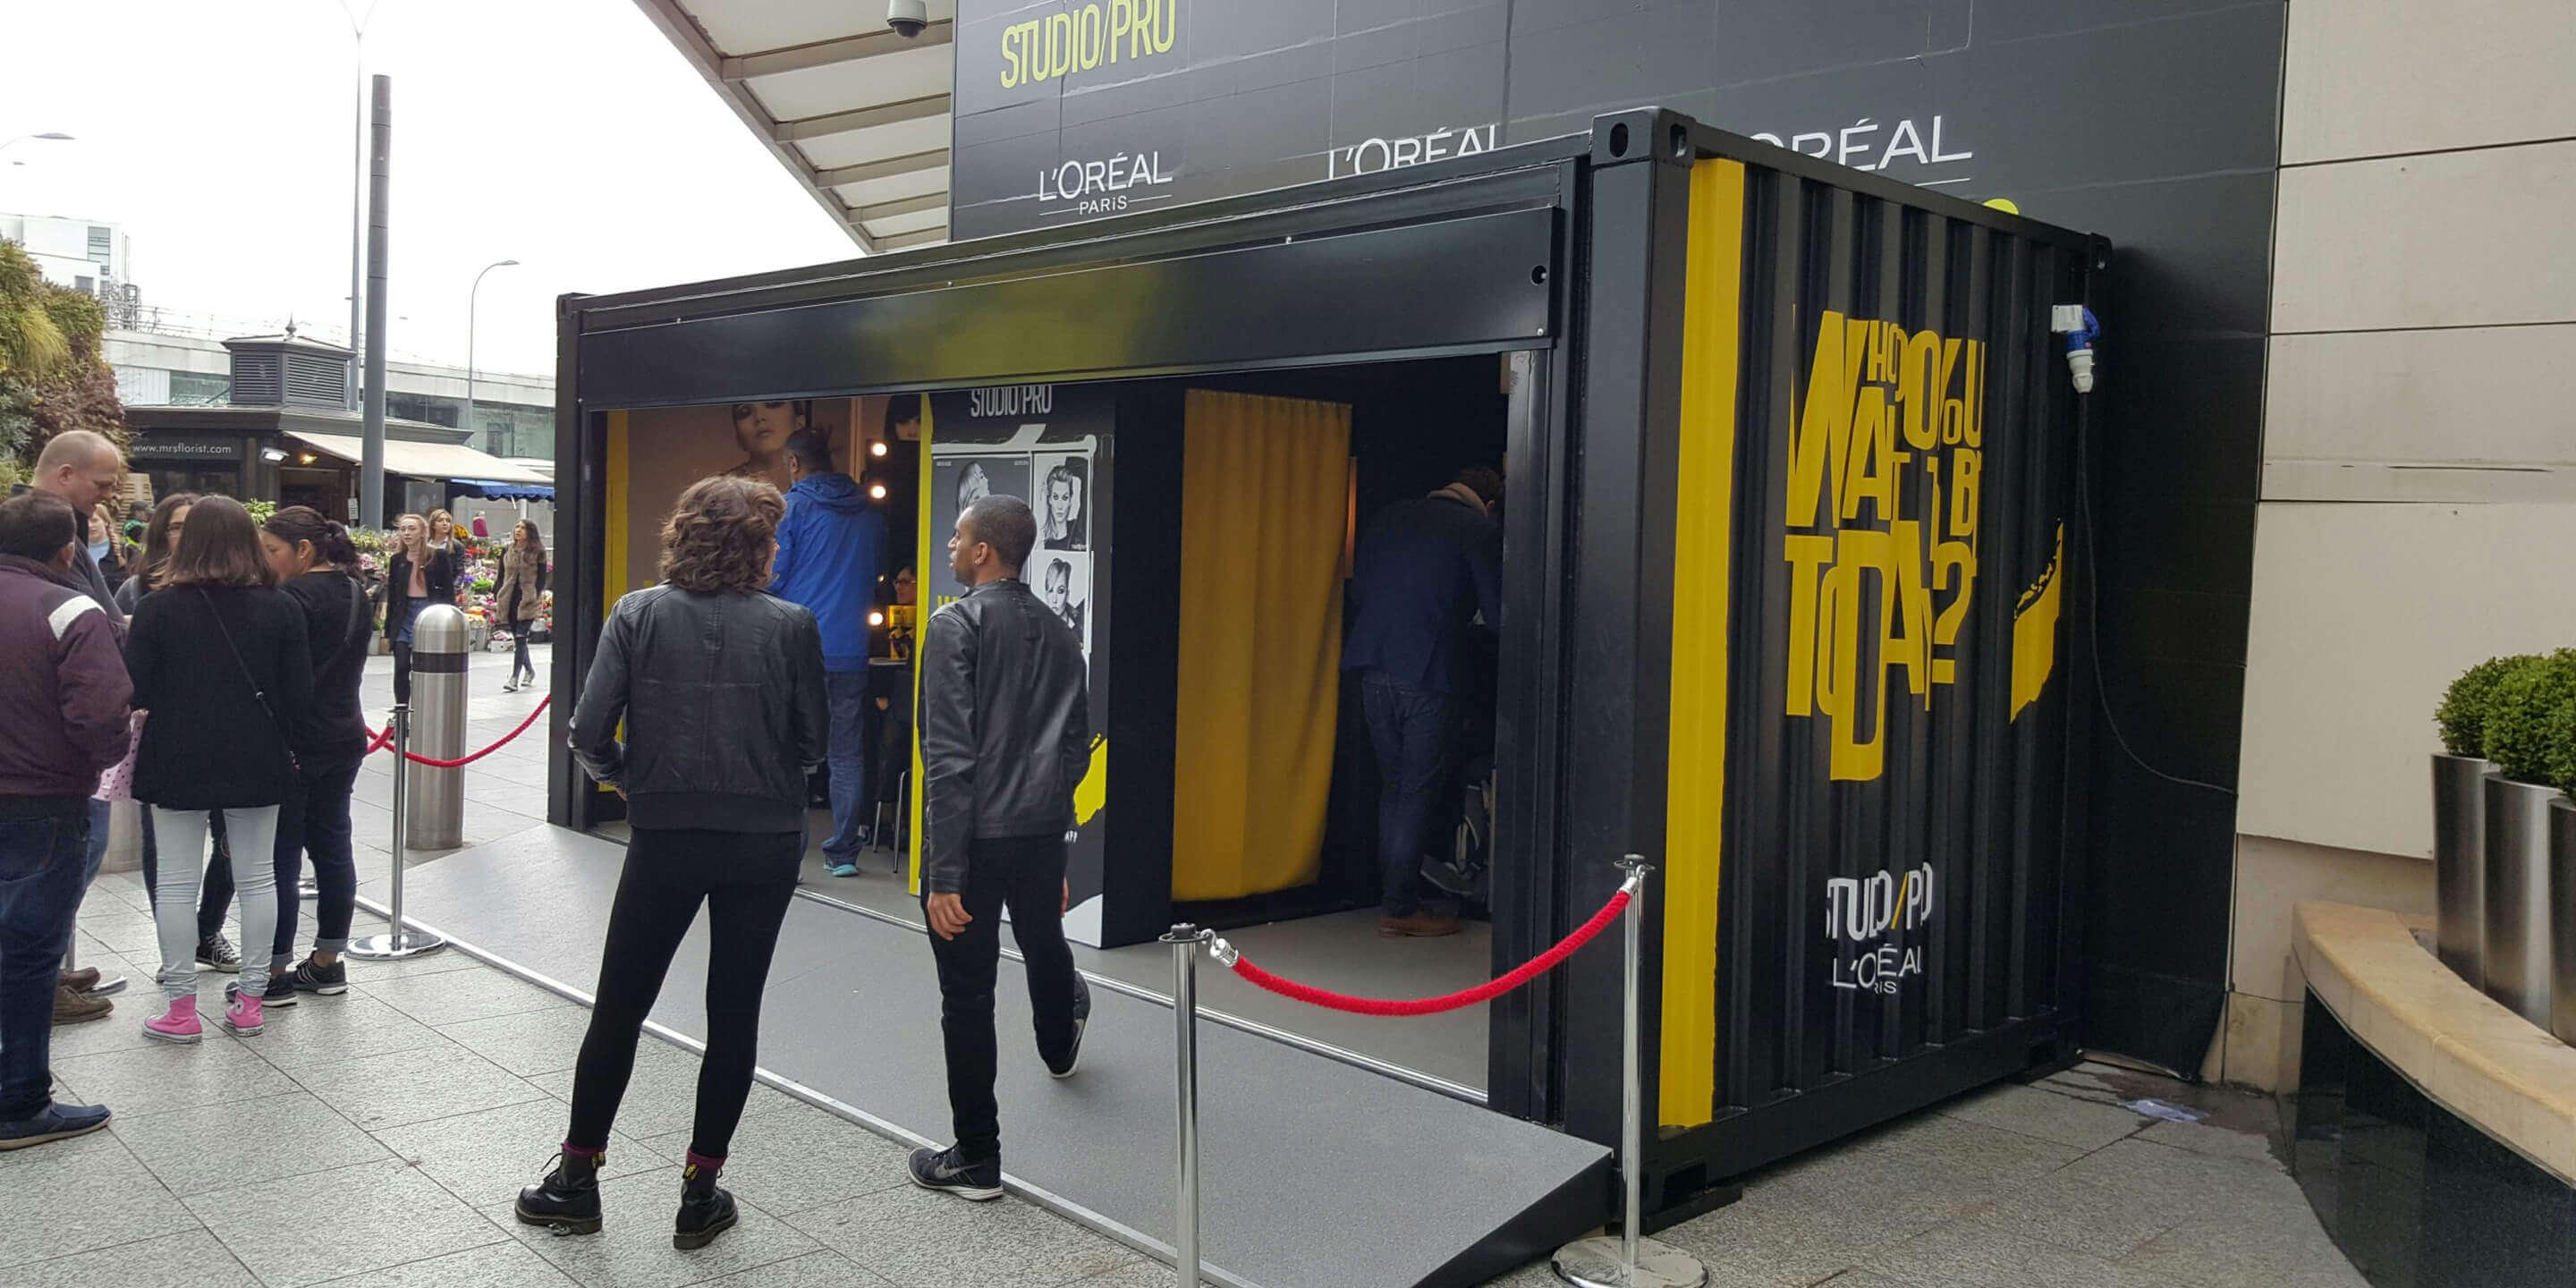 Event Shipping Containers: Gallery Event Container for Loreal Activation